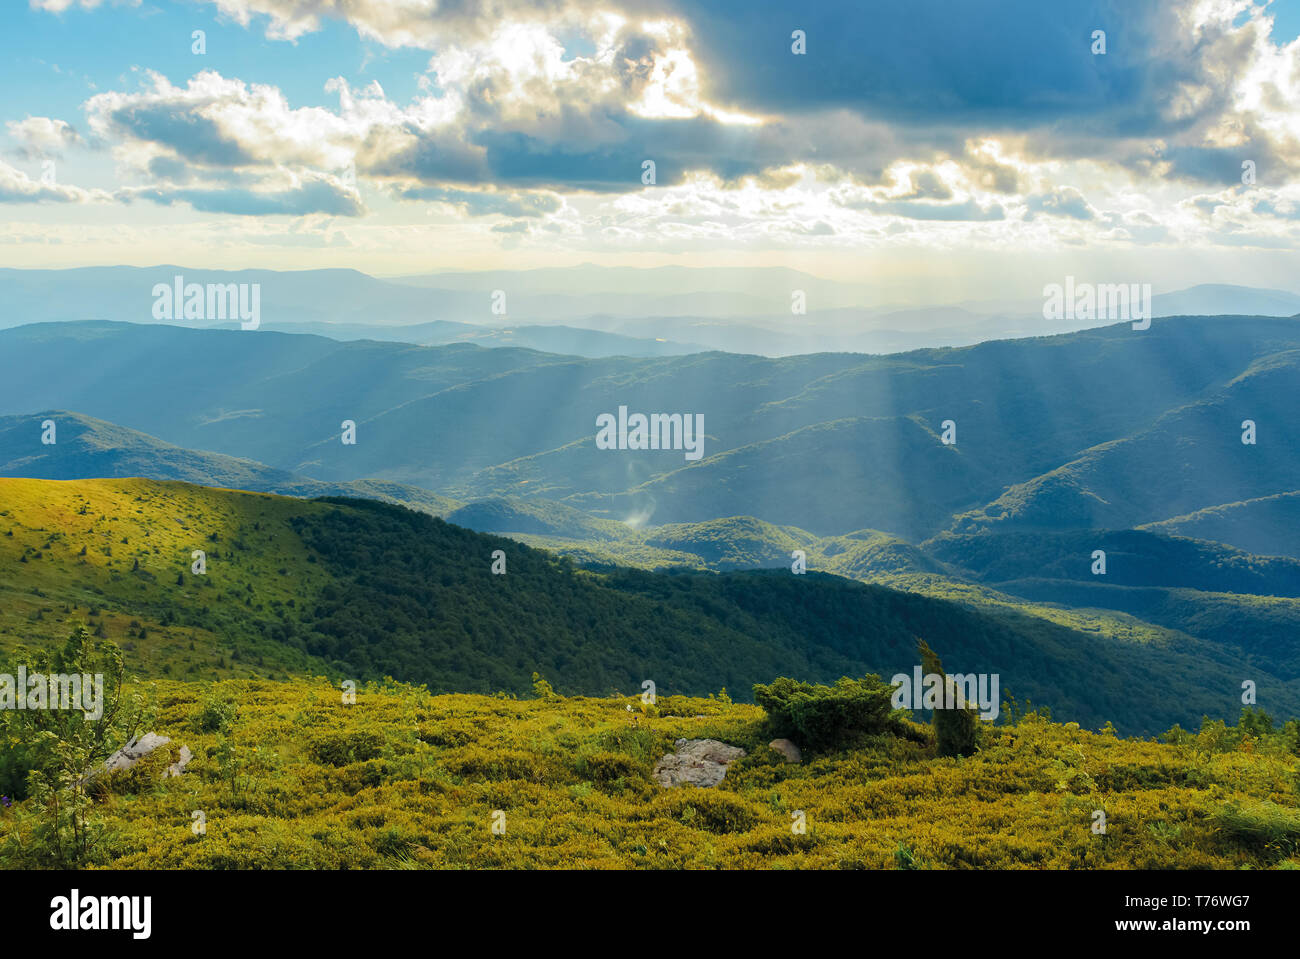 grassy meadow of a hillside on top of mountain ridge. beautiful summer landscape with blue sky and a cloud at sunset - Stock Image